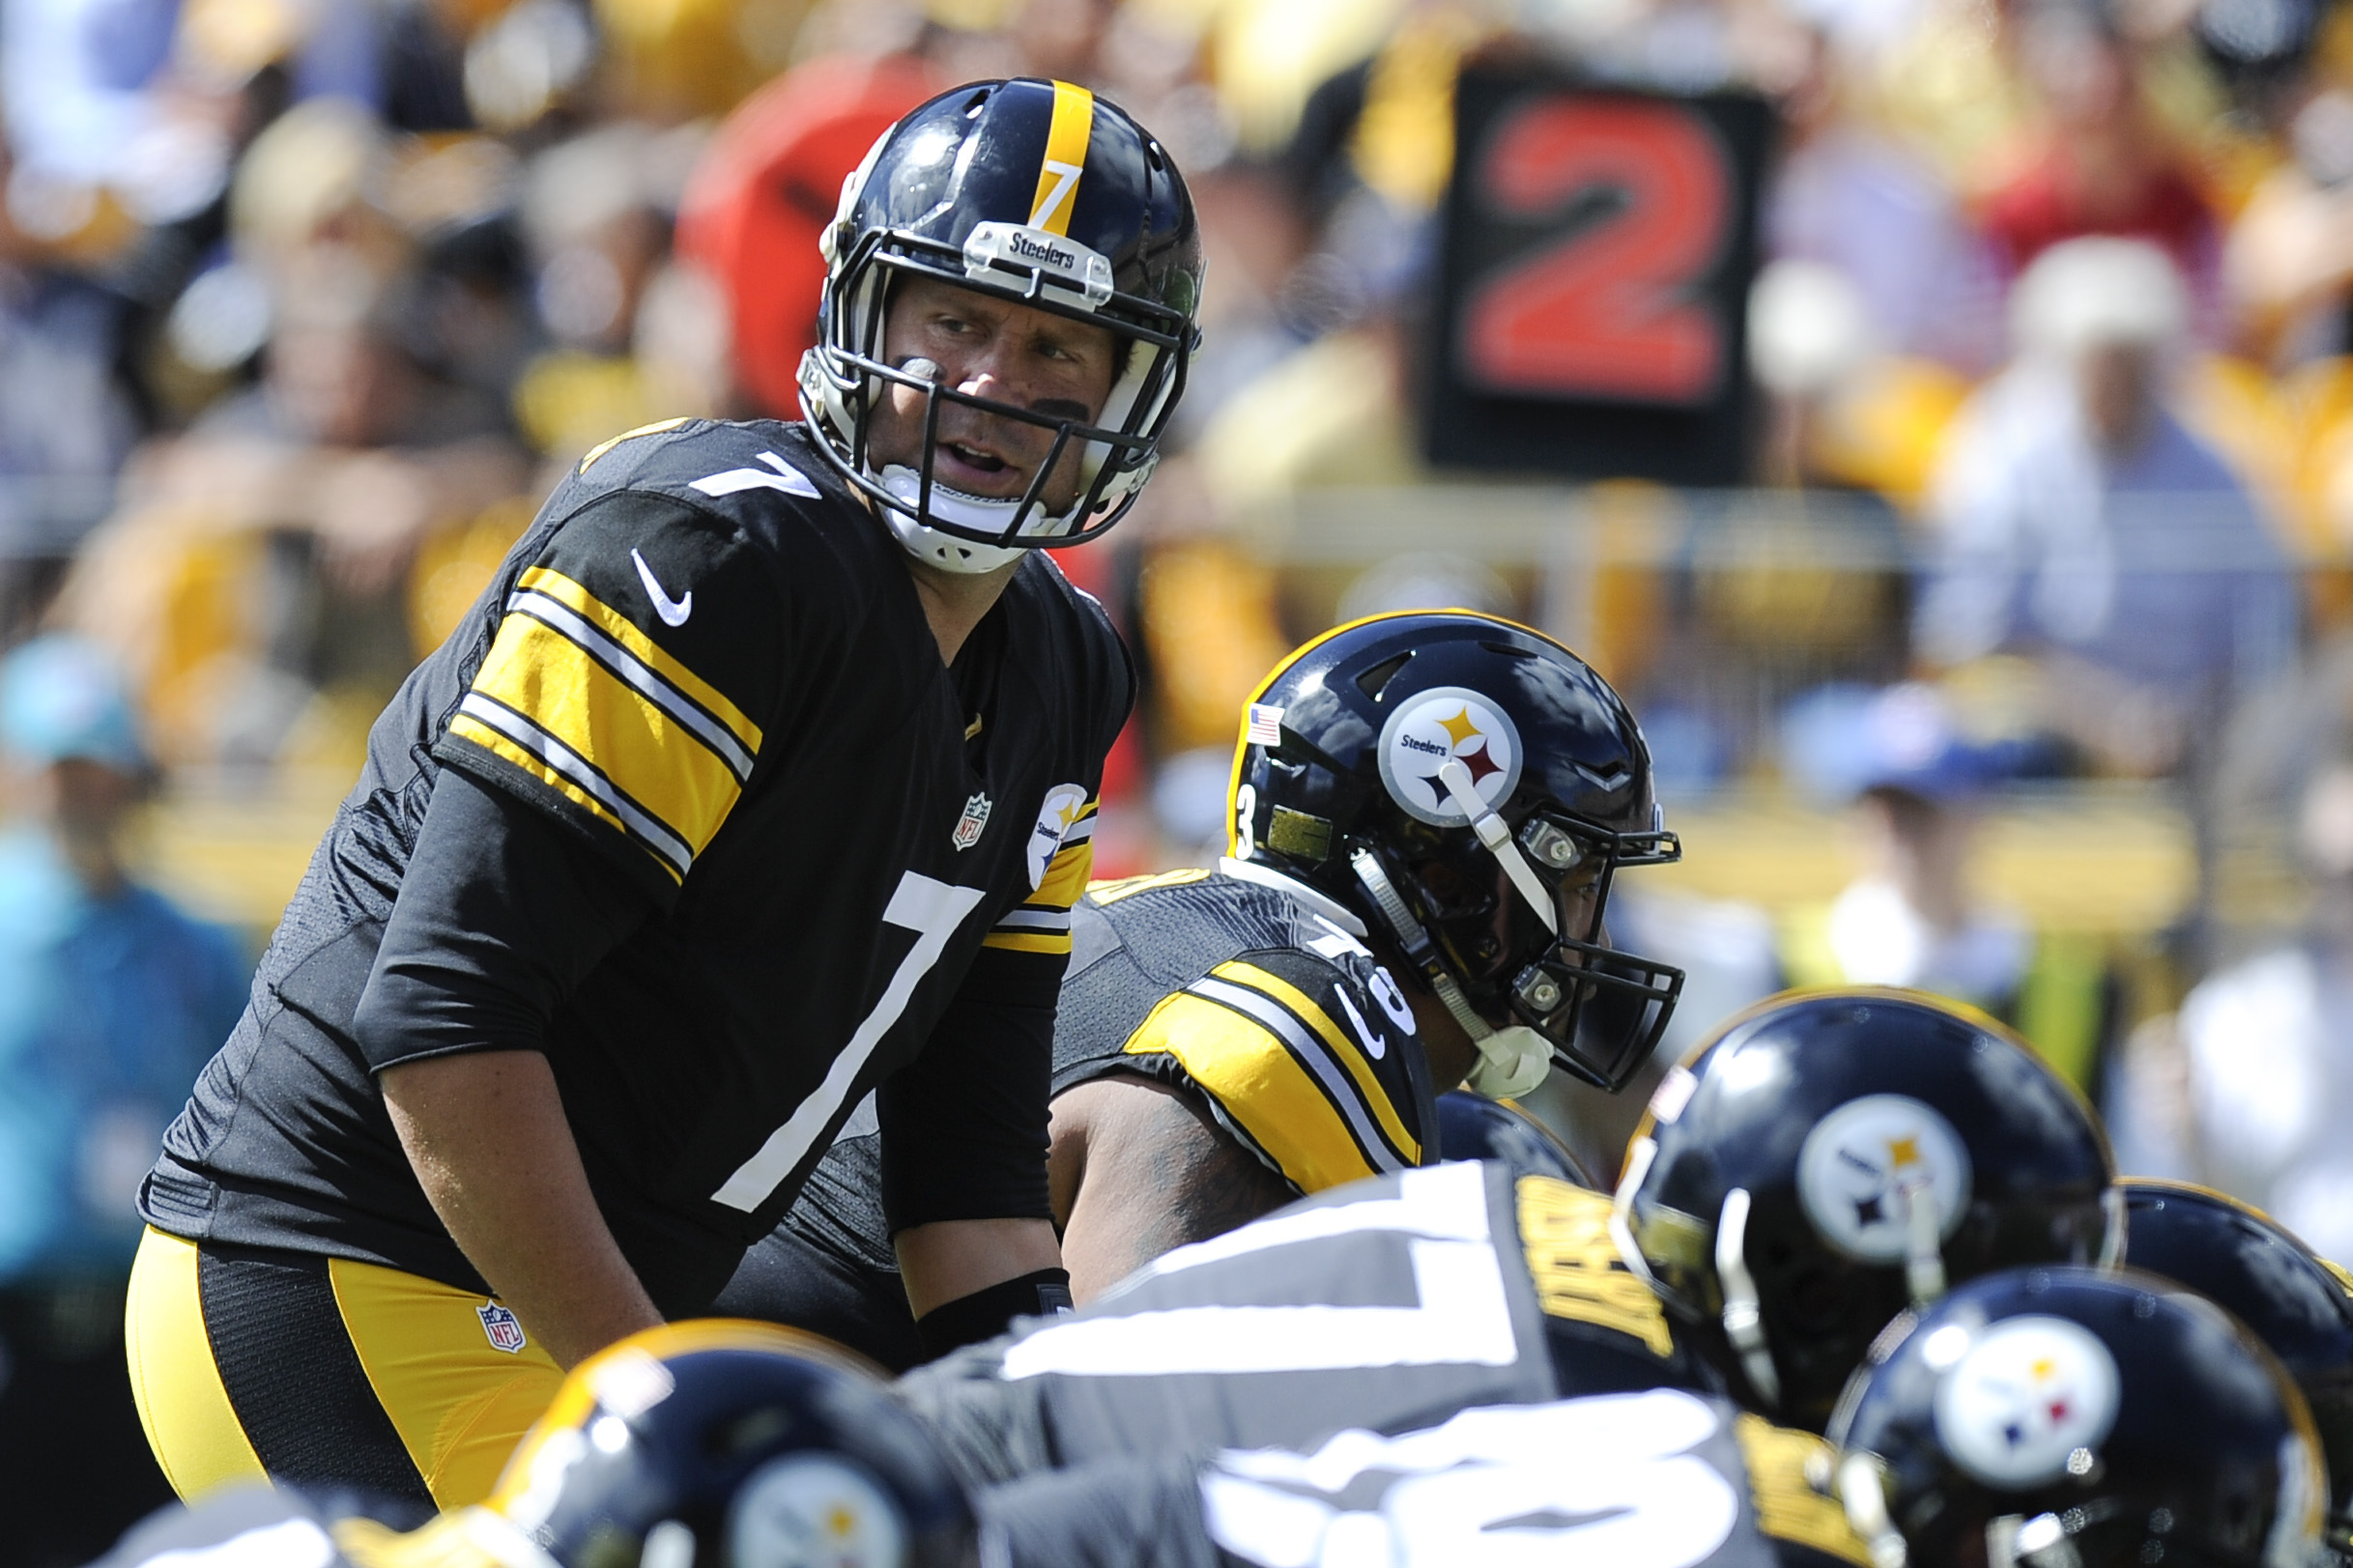 FILE - In this Sept. 20, 2015, file photo, Pittsburgh Steelers quarterback Ben Roethlisberger (7) prepares to take the snap in the first quarter of an NFL football game against the San Francisco 49ers in Pittsburgh. Roethlisberger is back. The Steelers ho